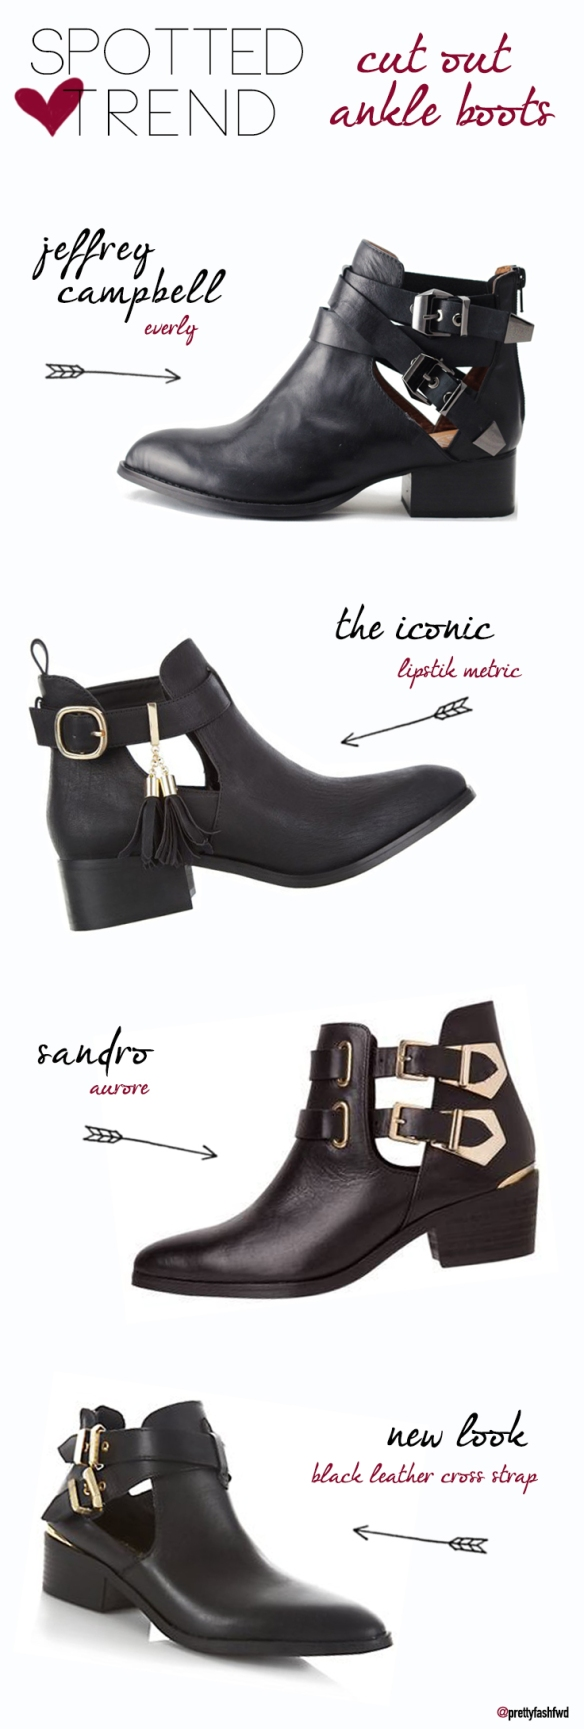 [Spotted Trend] - Cut-Out Ankle Boots